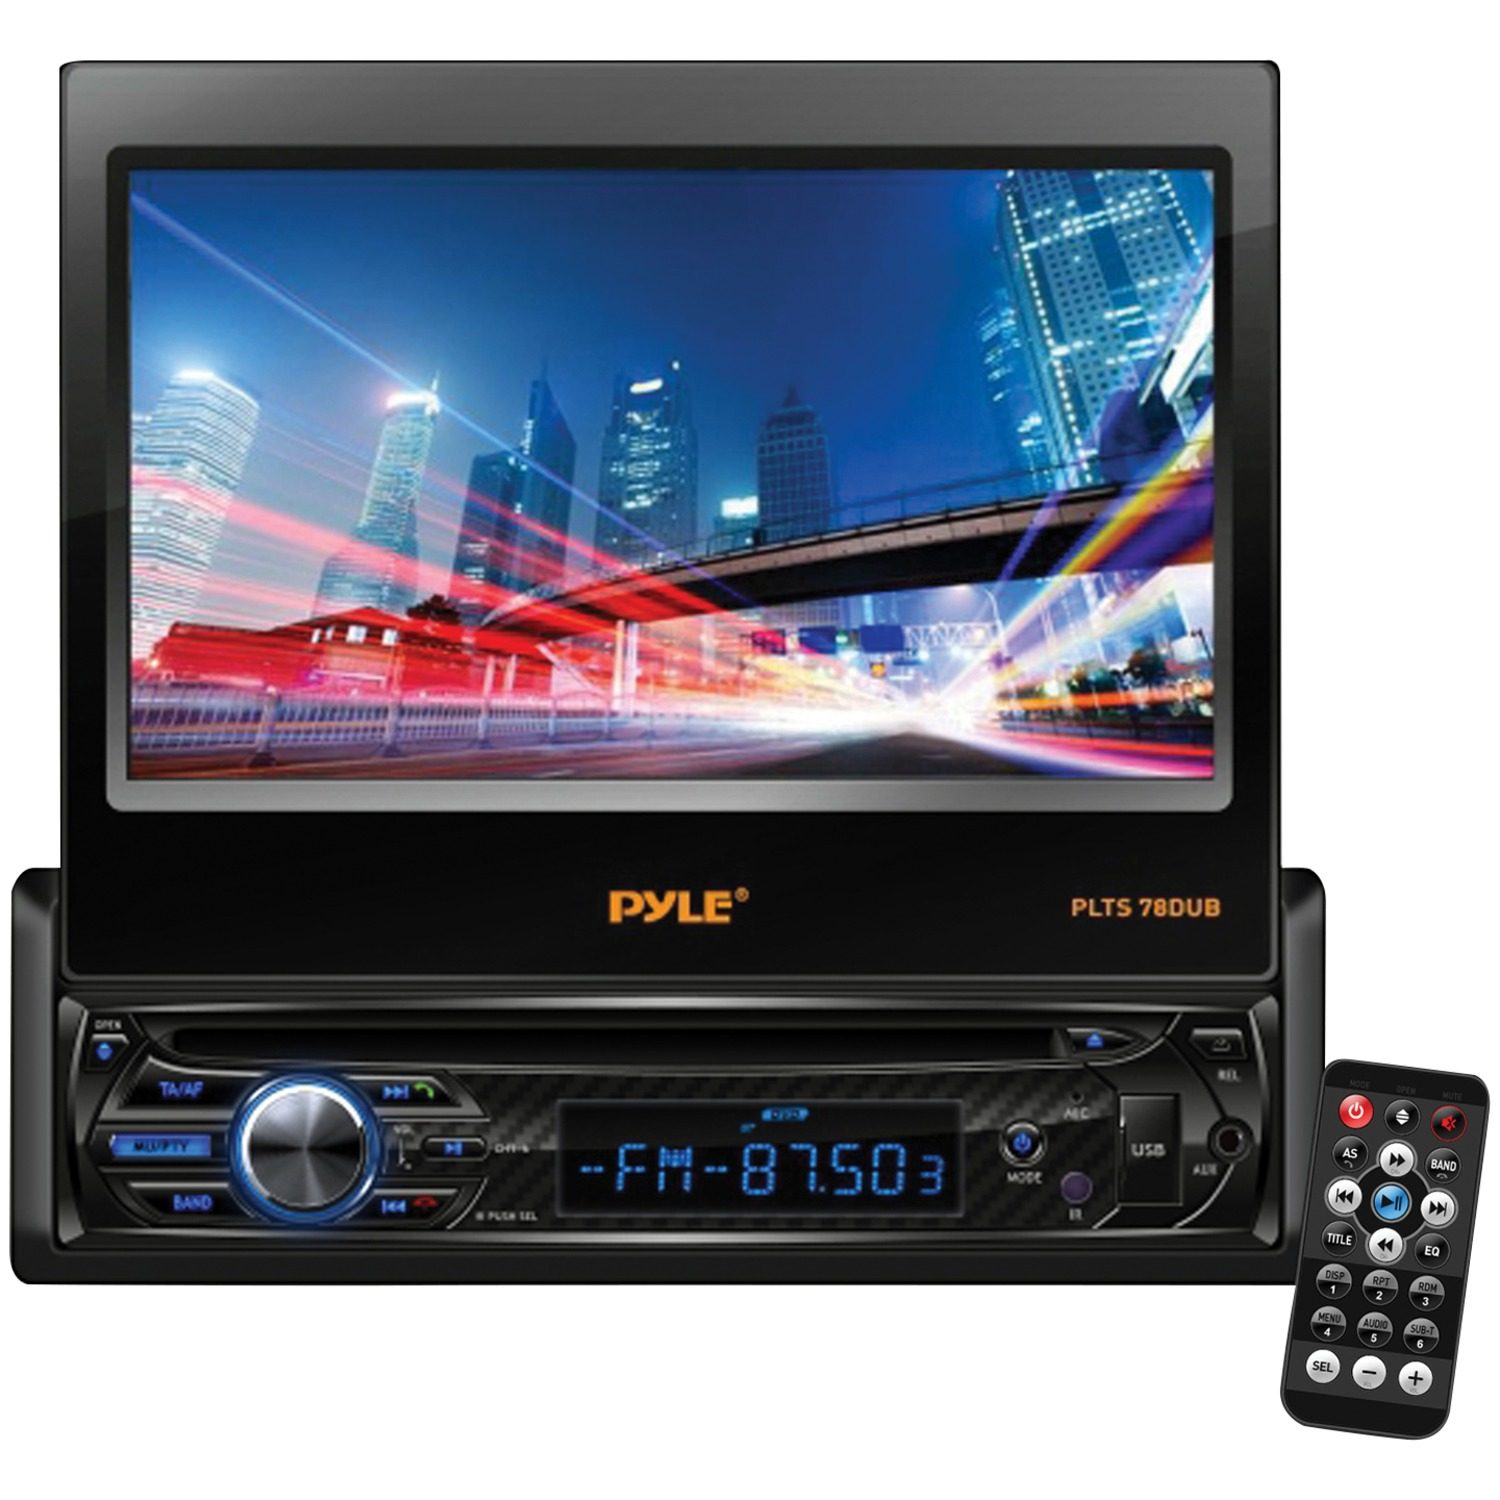 PYLE PLTS78DUB - 7'' Touch Screen Motorized Detachable TFT/LCD Monitor With DVD/CD/MP3/AM/FM Bluetooth Receiver